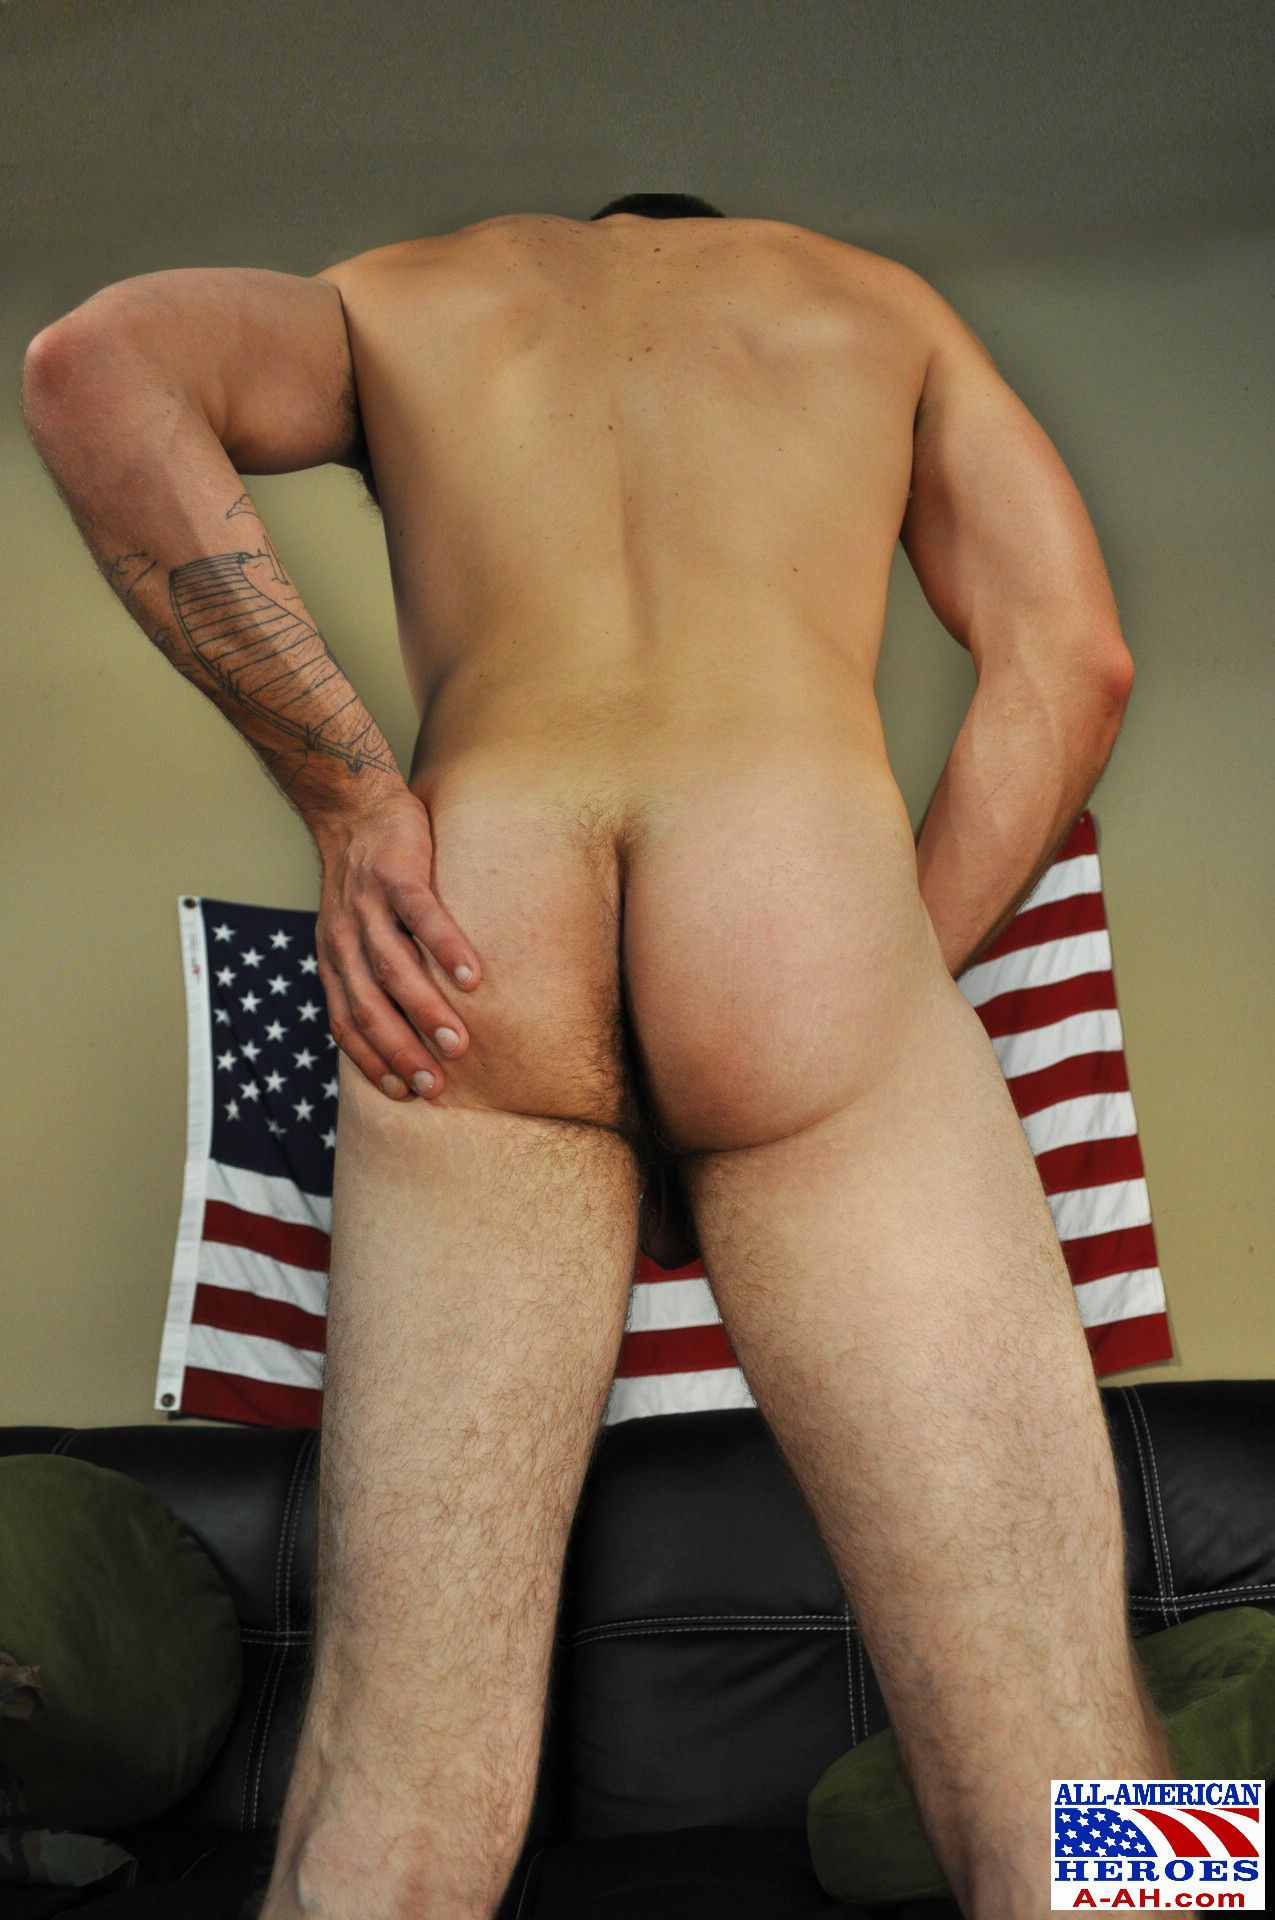 All american heroes christopher jerk off